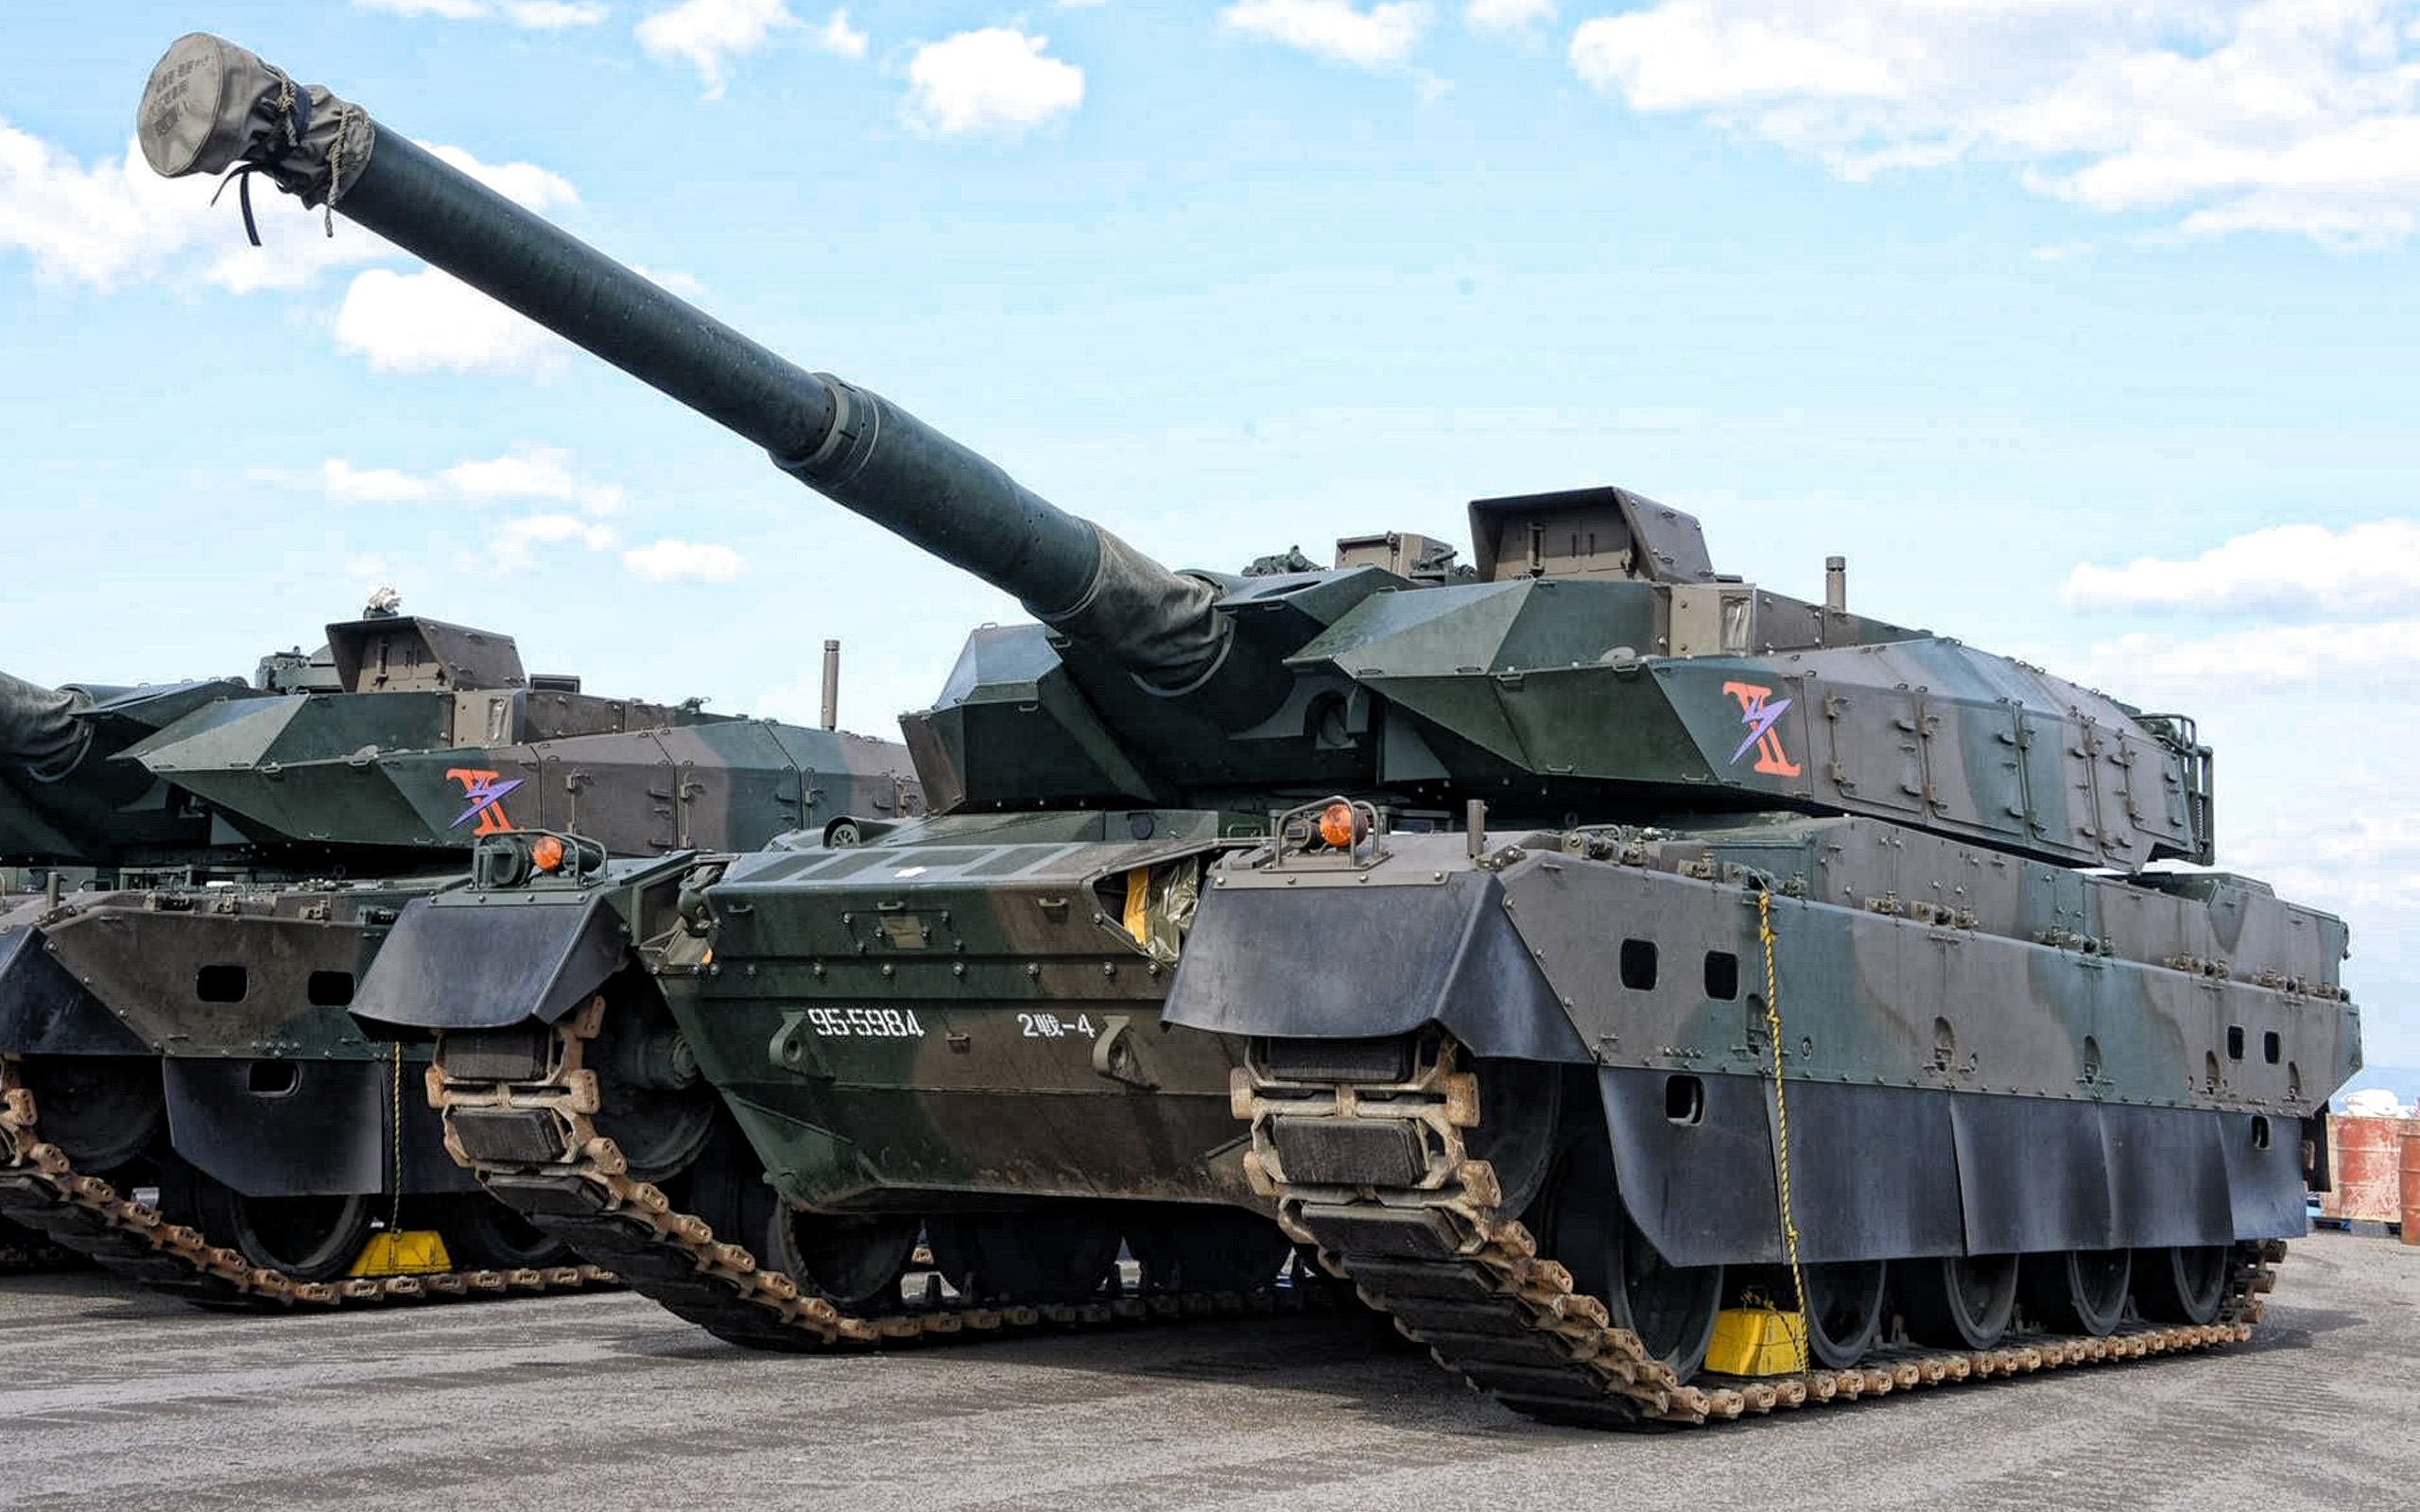 Typ 10, Japansk main battle tank, Typ 10 Hitomaru, Mitsubishi, Japan Self-Defense Forces, JSDF, moderna tankar, Japan